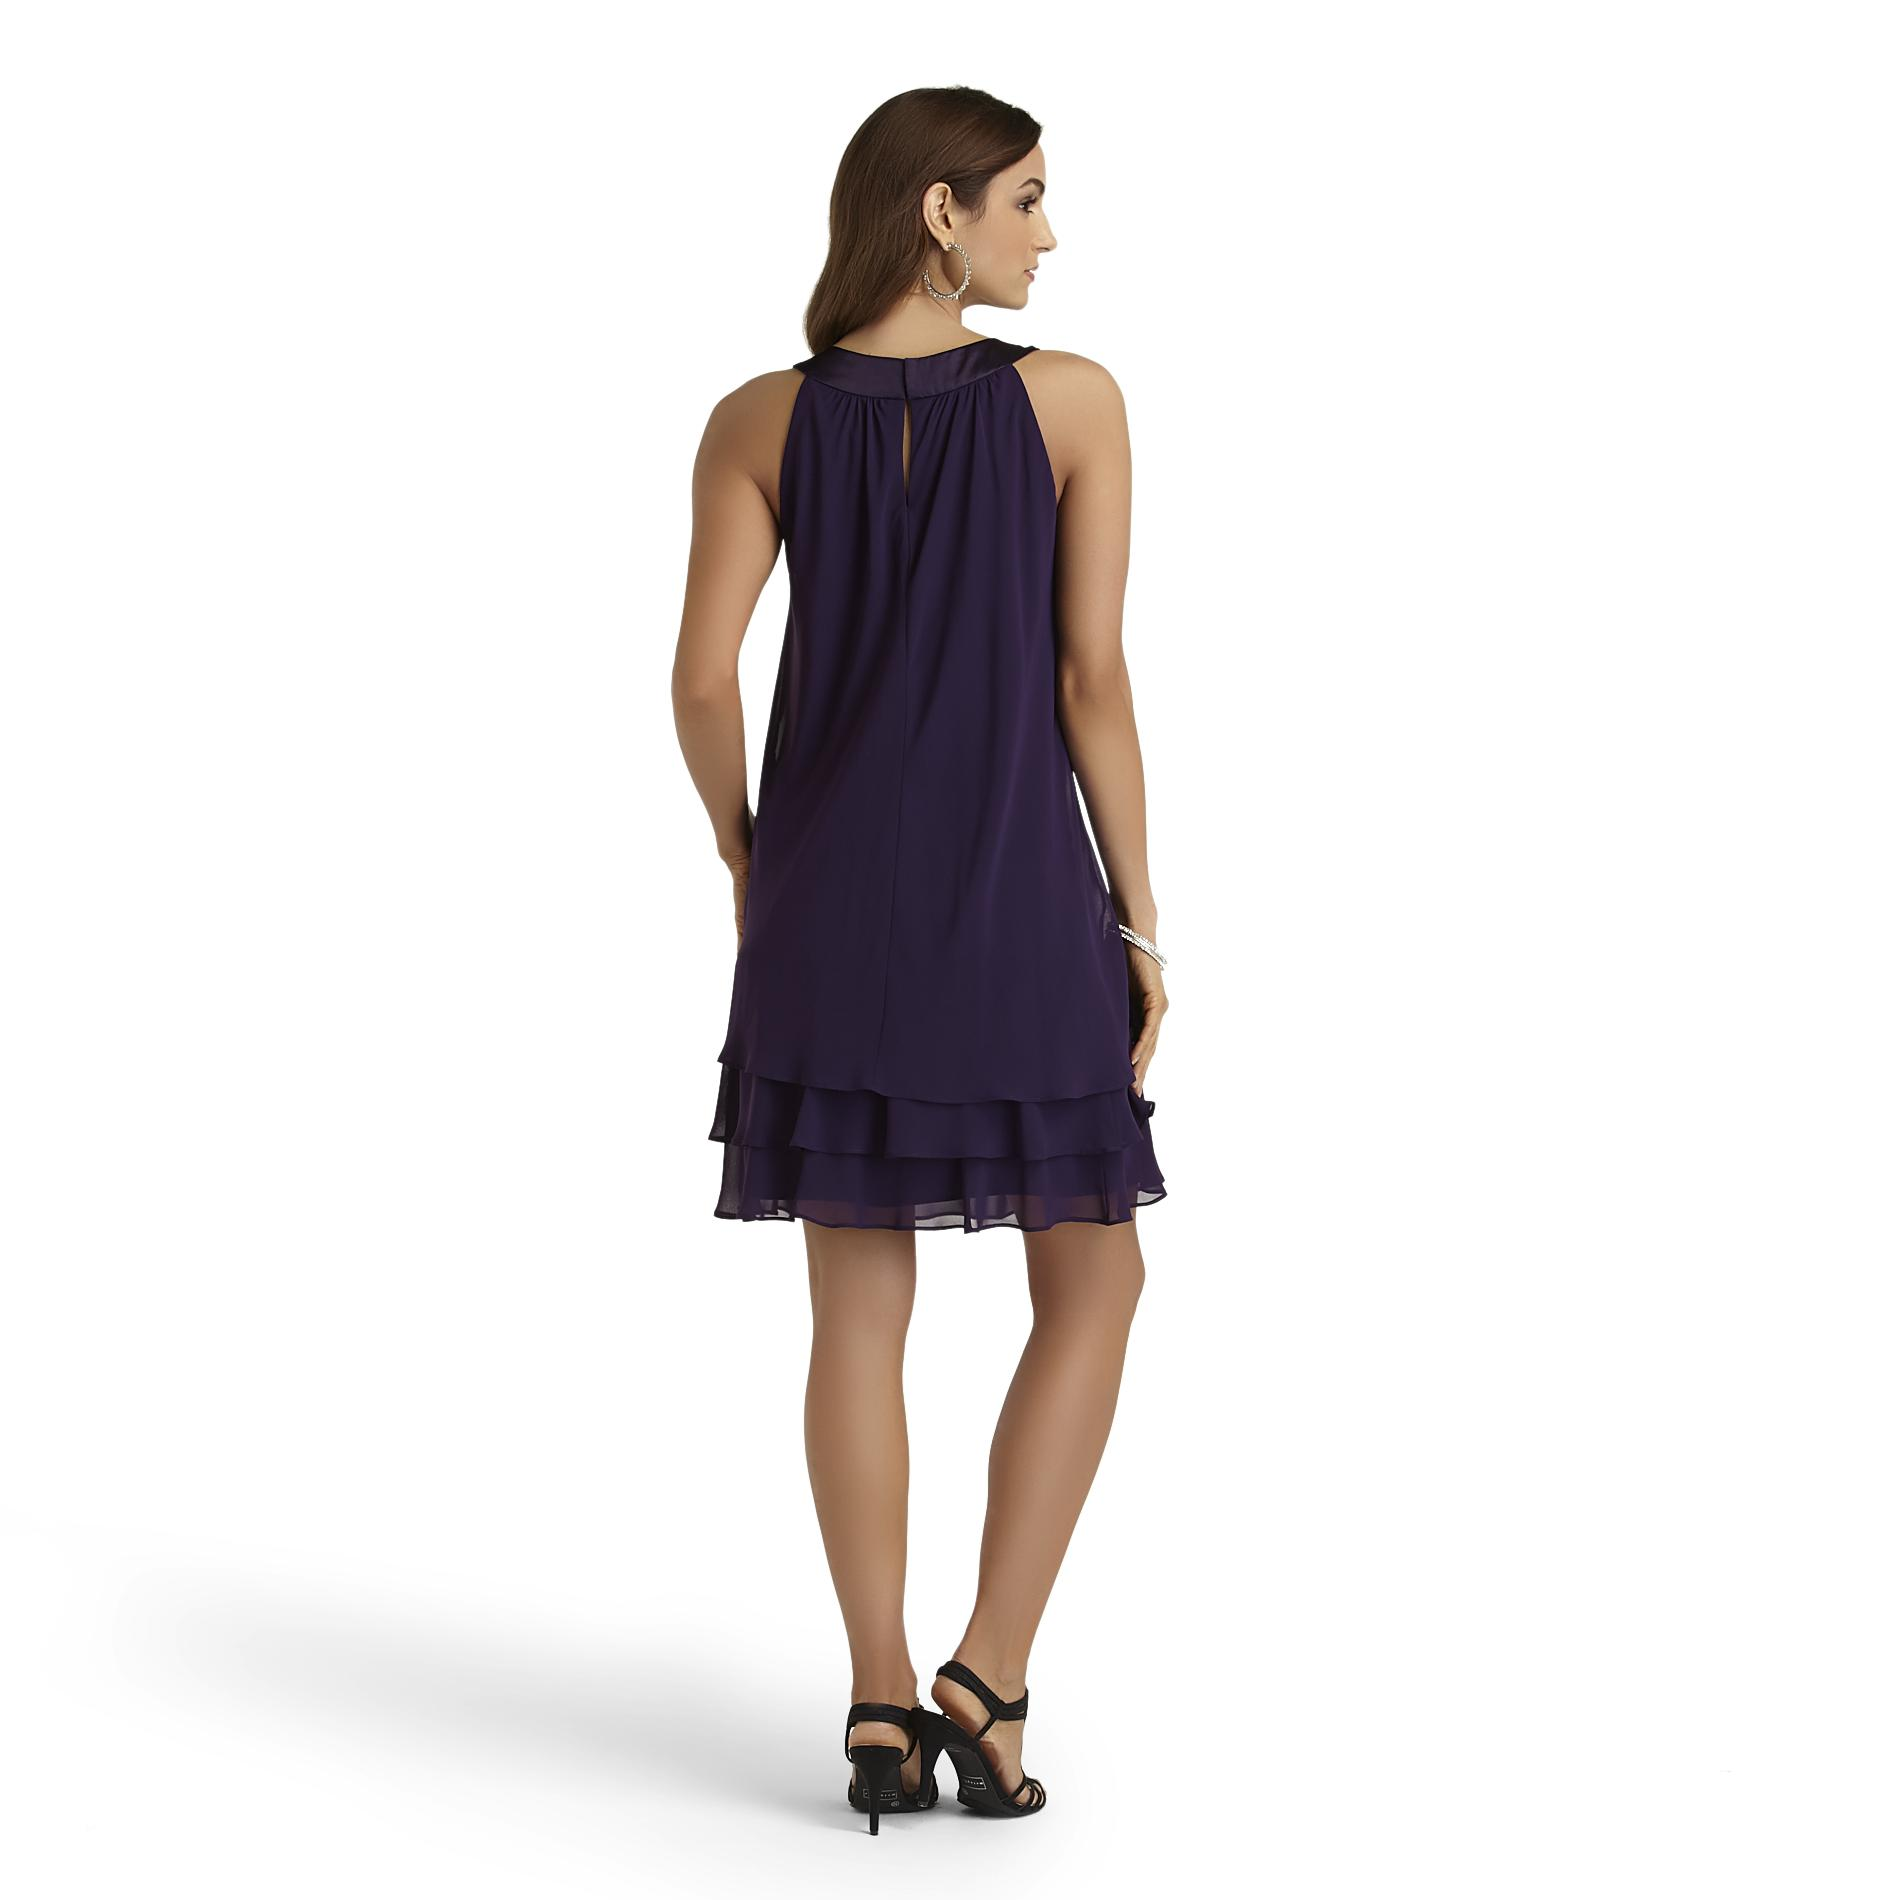 Sally Lou Fashions Women's Tiered Dress - Clothing, Shoes & Jewelry - Clothing - Women's ...